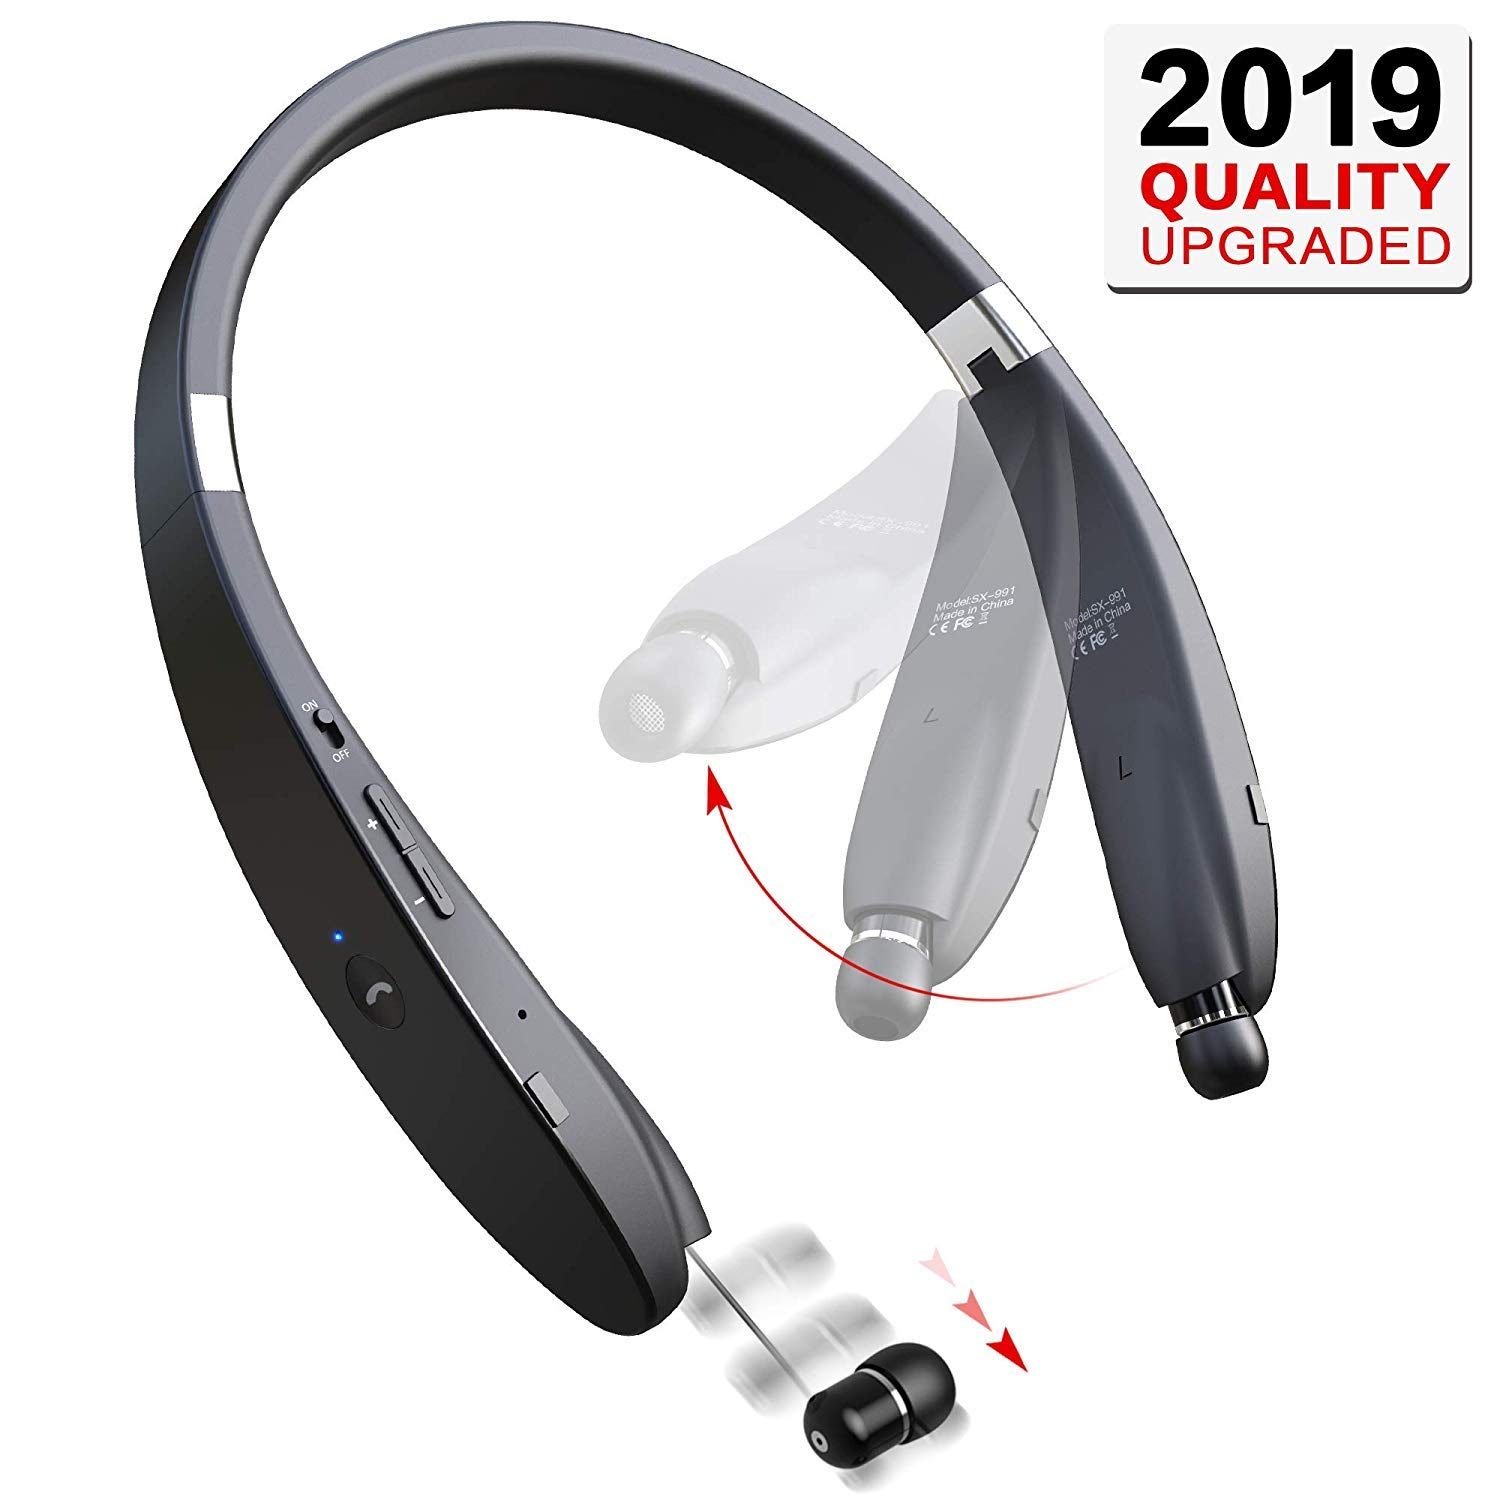 ee9d4566074 Bluetooth Headphones Retractable Earbuds V 4.1 [18 Hrs Play Time] Neckband  Foldable Wireless Headset with Noise Cancelling Sweatproof Sport Earphone  for ...